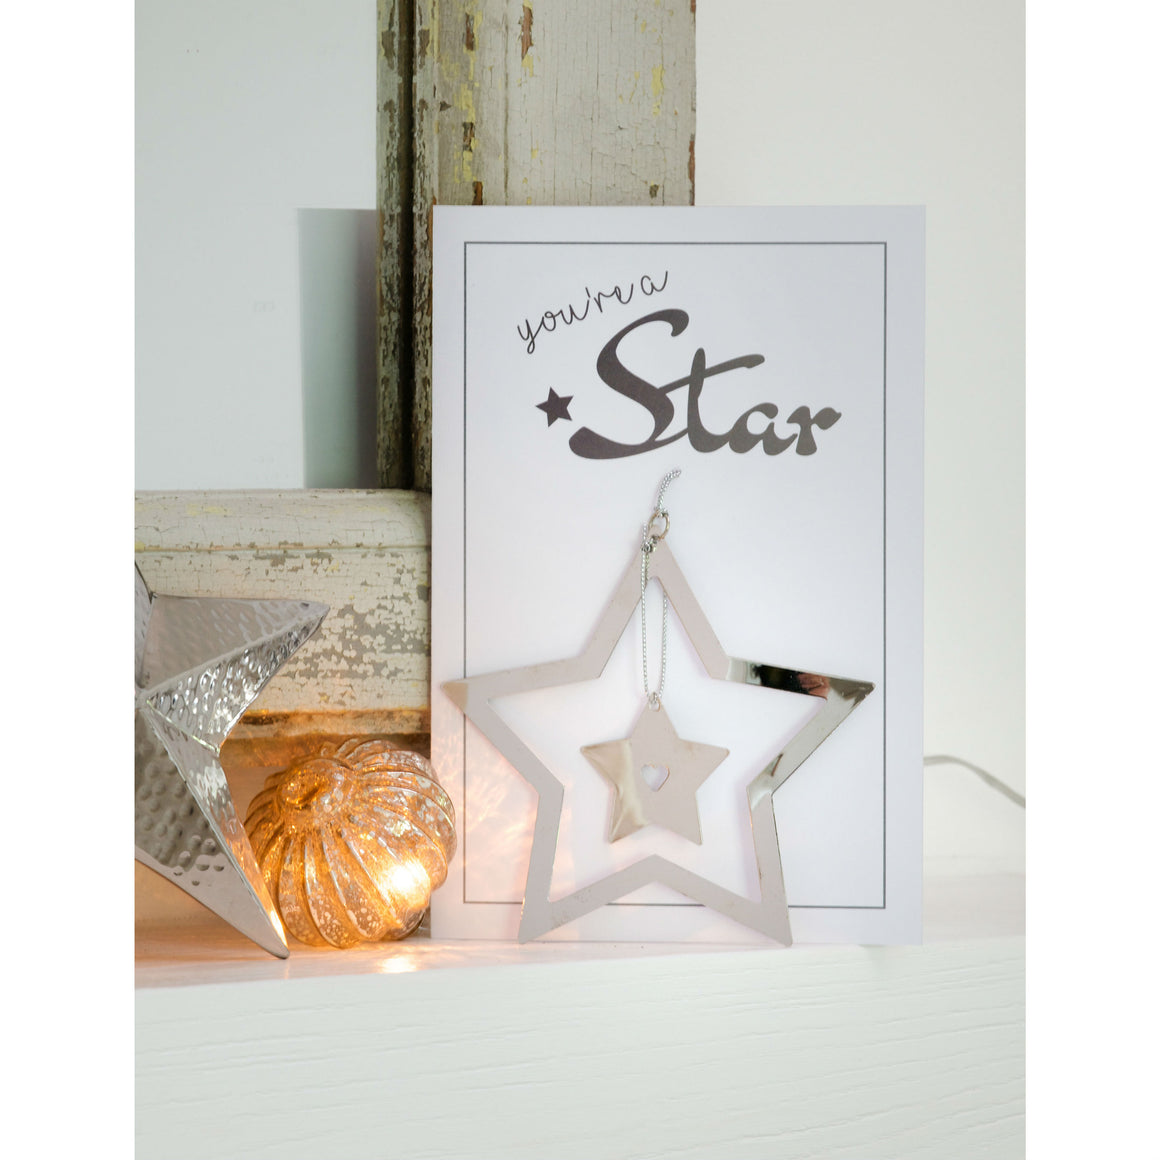 You're A Star Greetings Card and Keepsake - The Love Trees